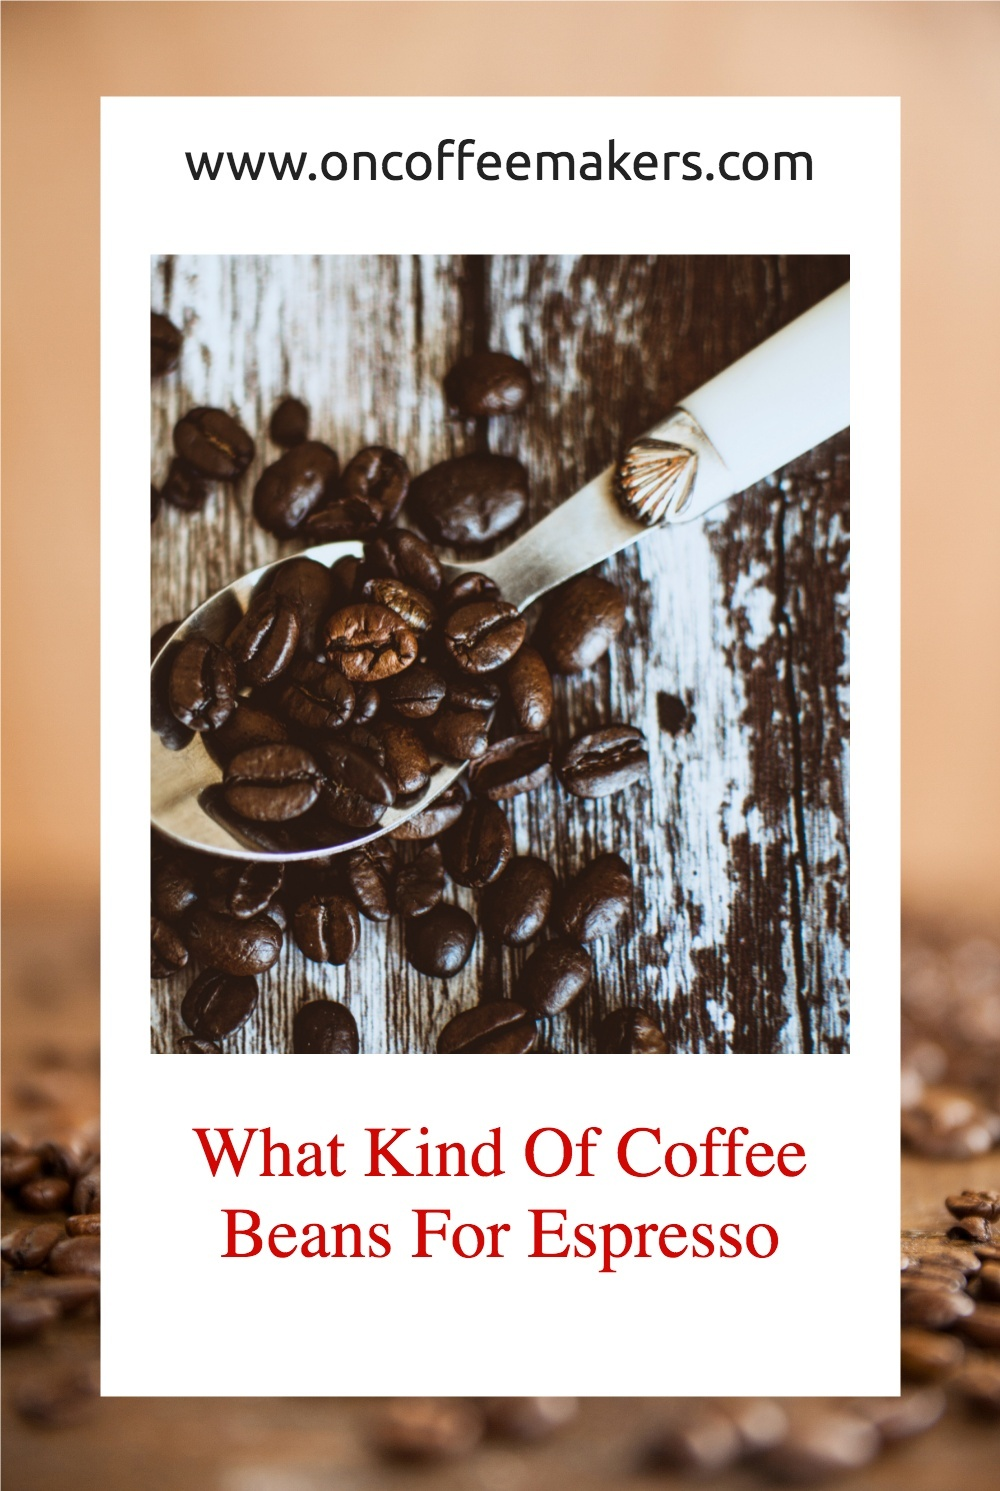 Food and drink Pinterest Pin image created by oncoffeemakers using a Tailwind Create design template in 2021.